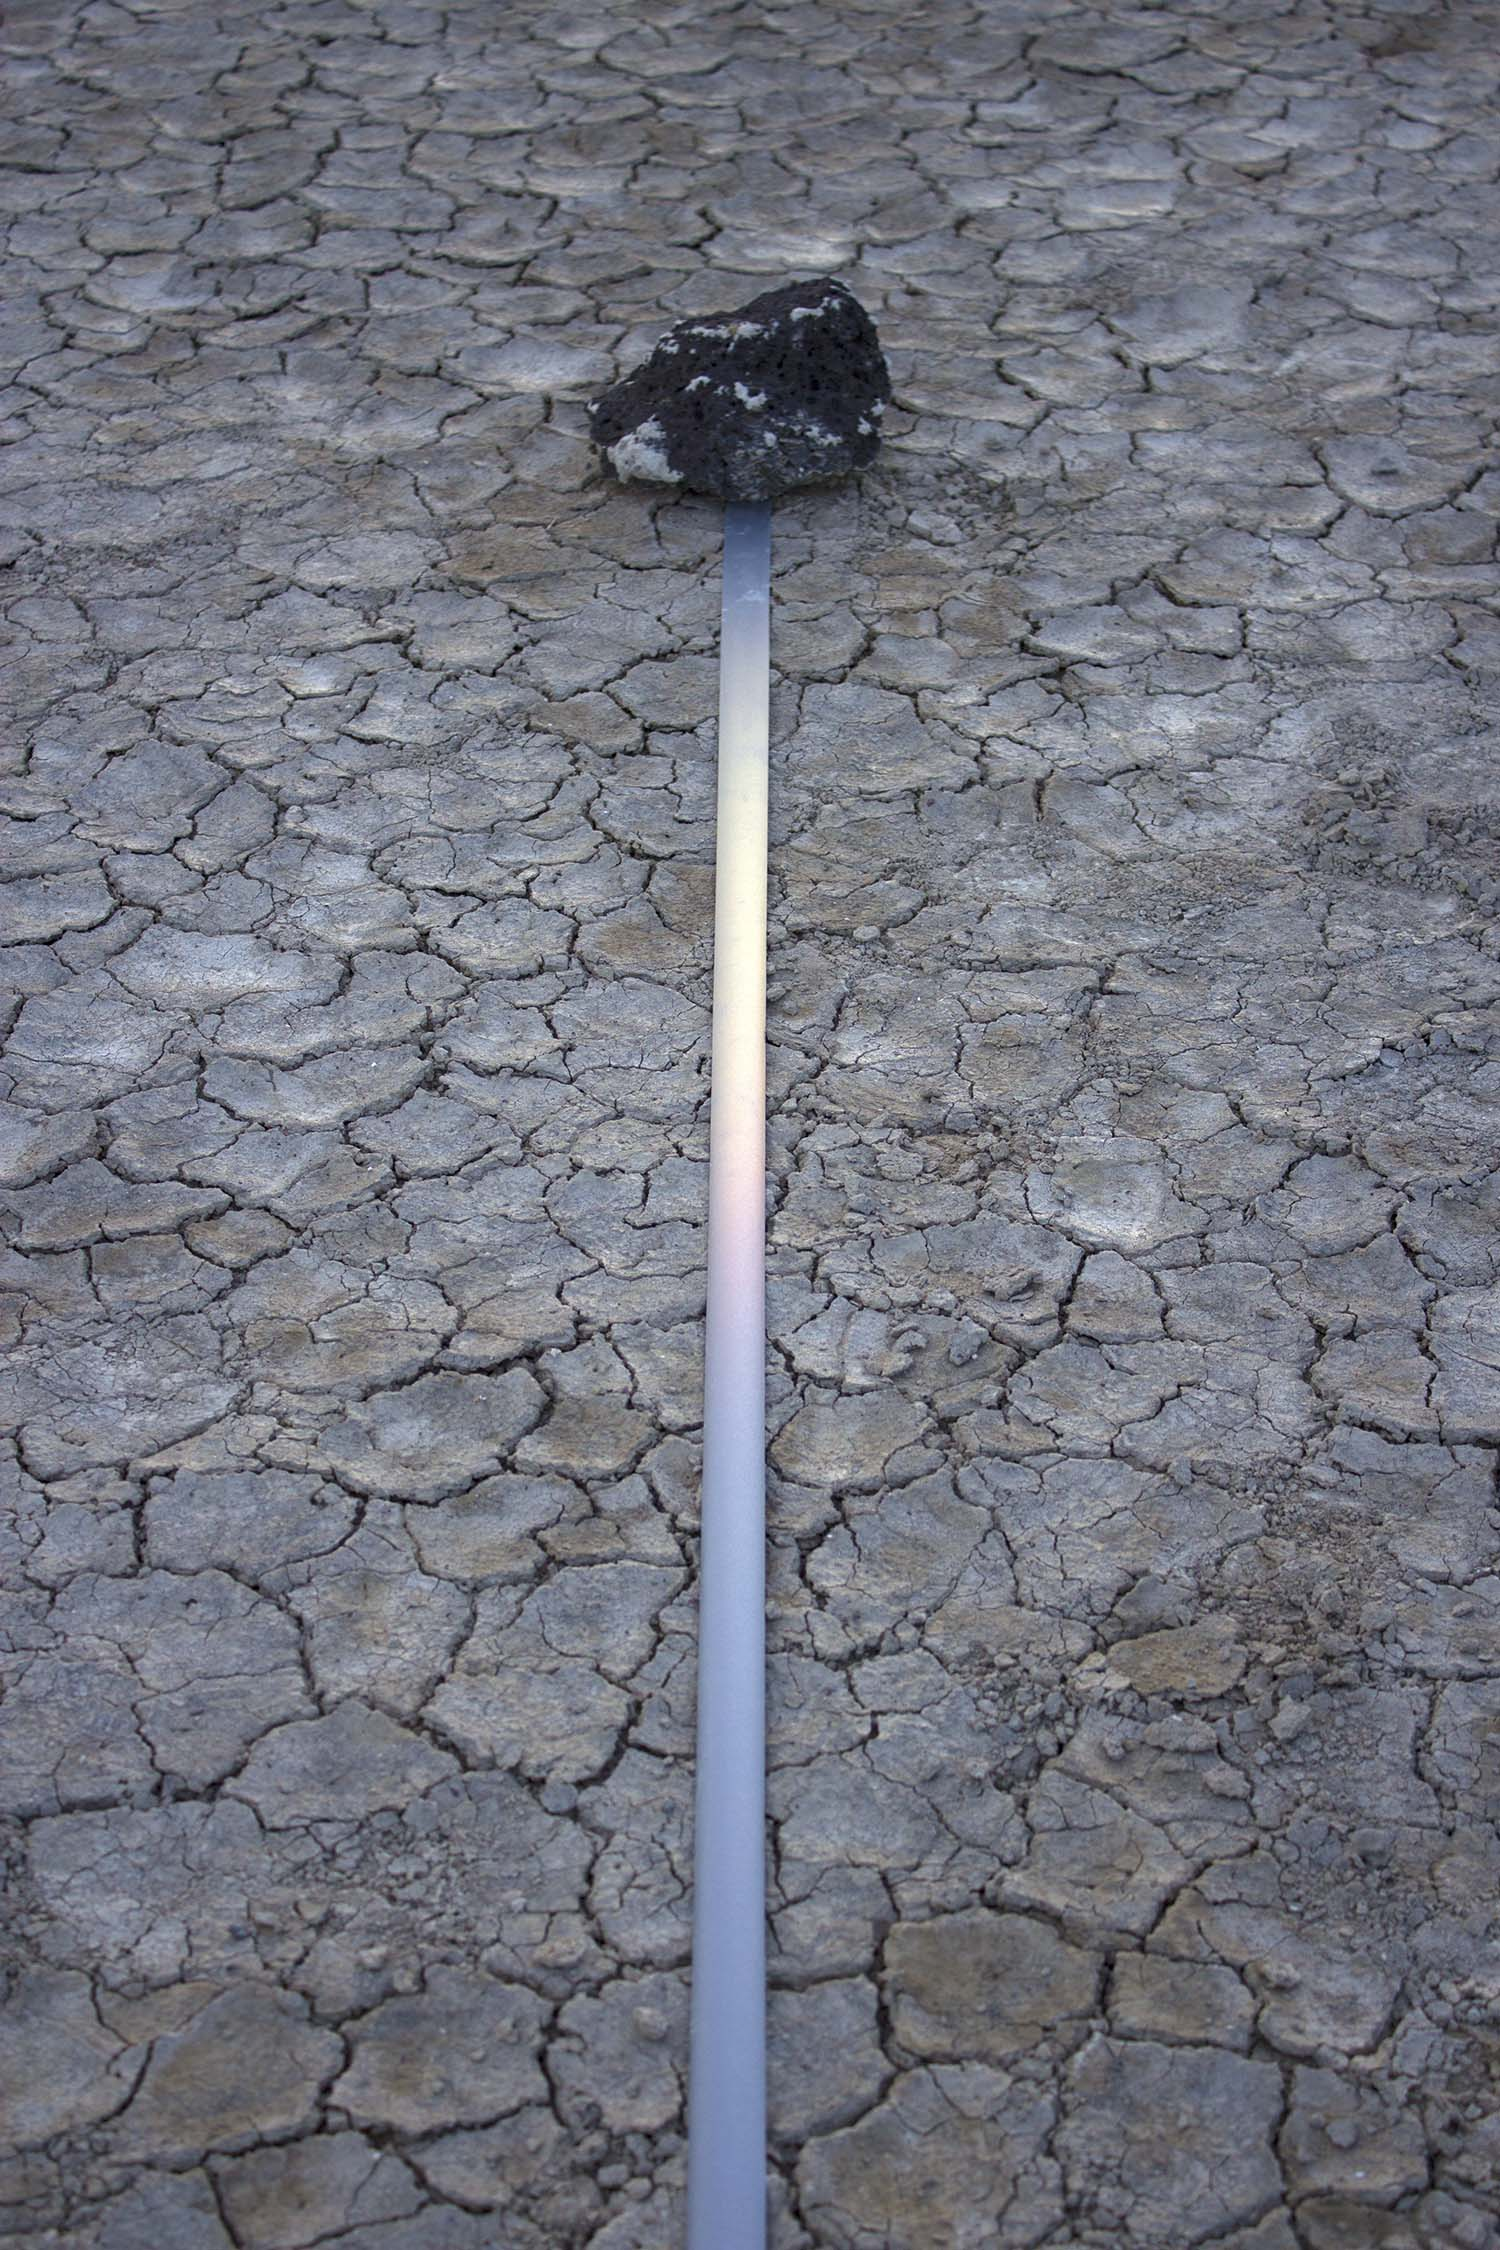 marking time in light  , 2014 (detail) reflective fabric tape, found stones, natural light 8.5 x 1.5 x 1494 in.  Alvord Desert, Eastern Oregon